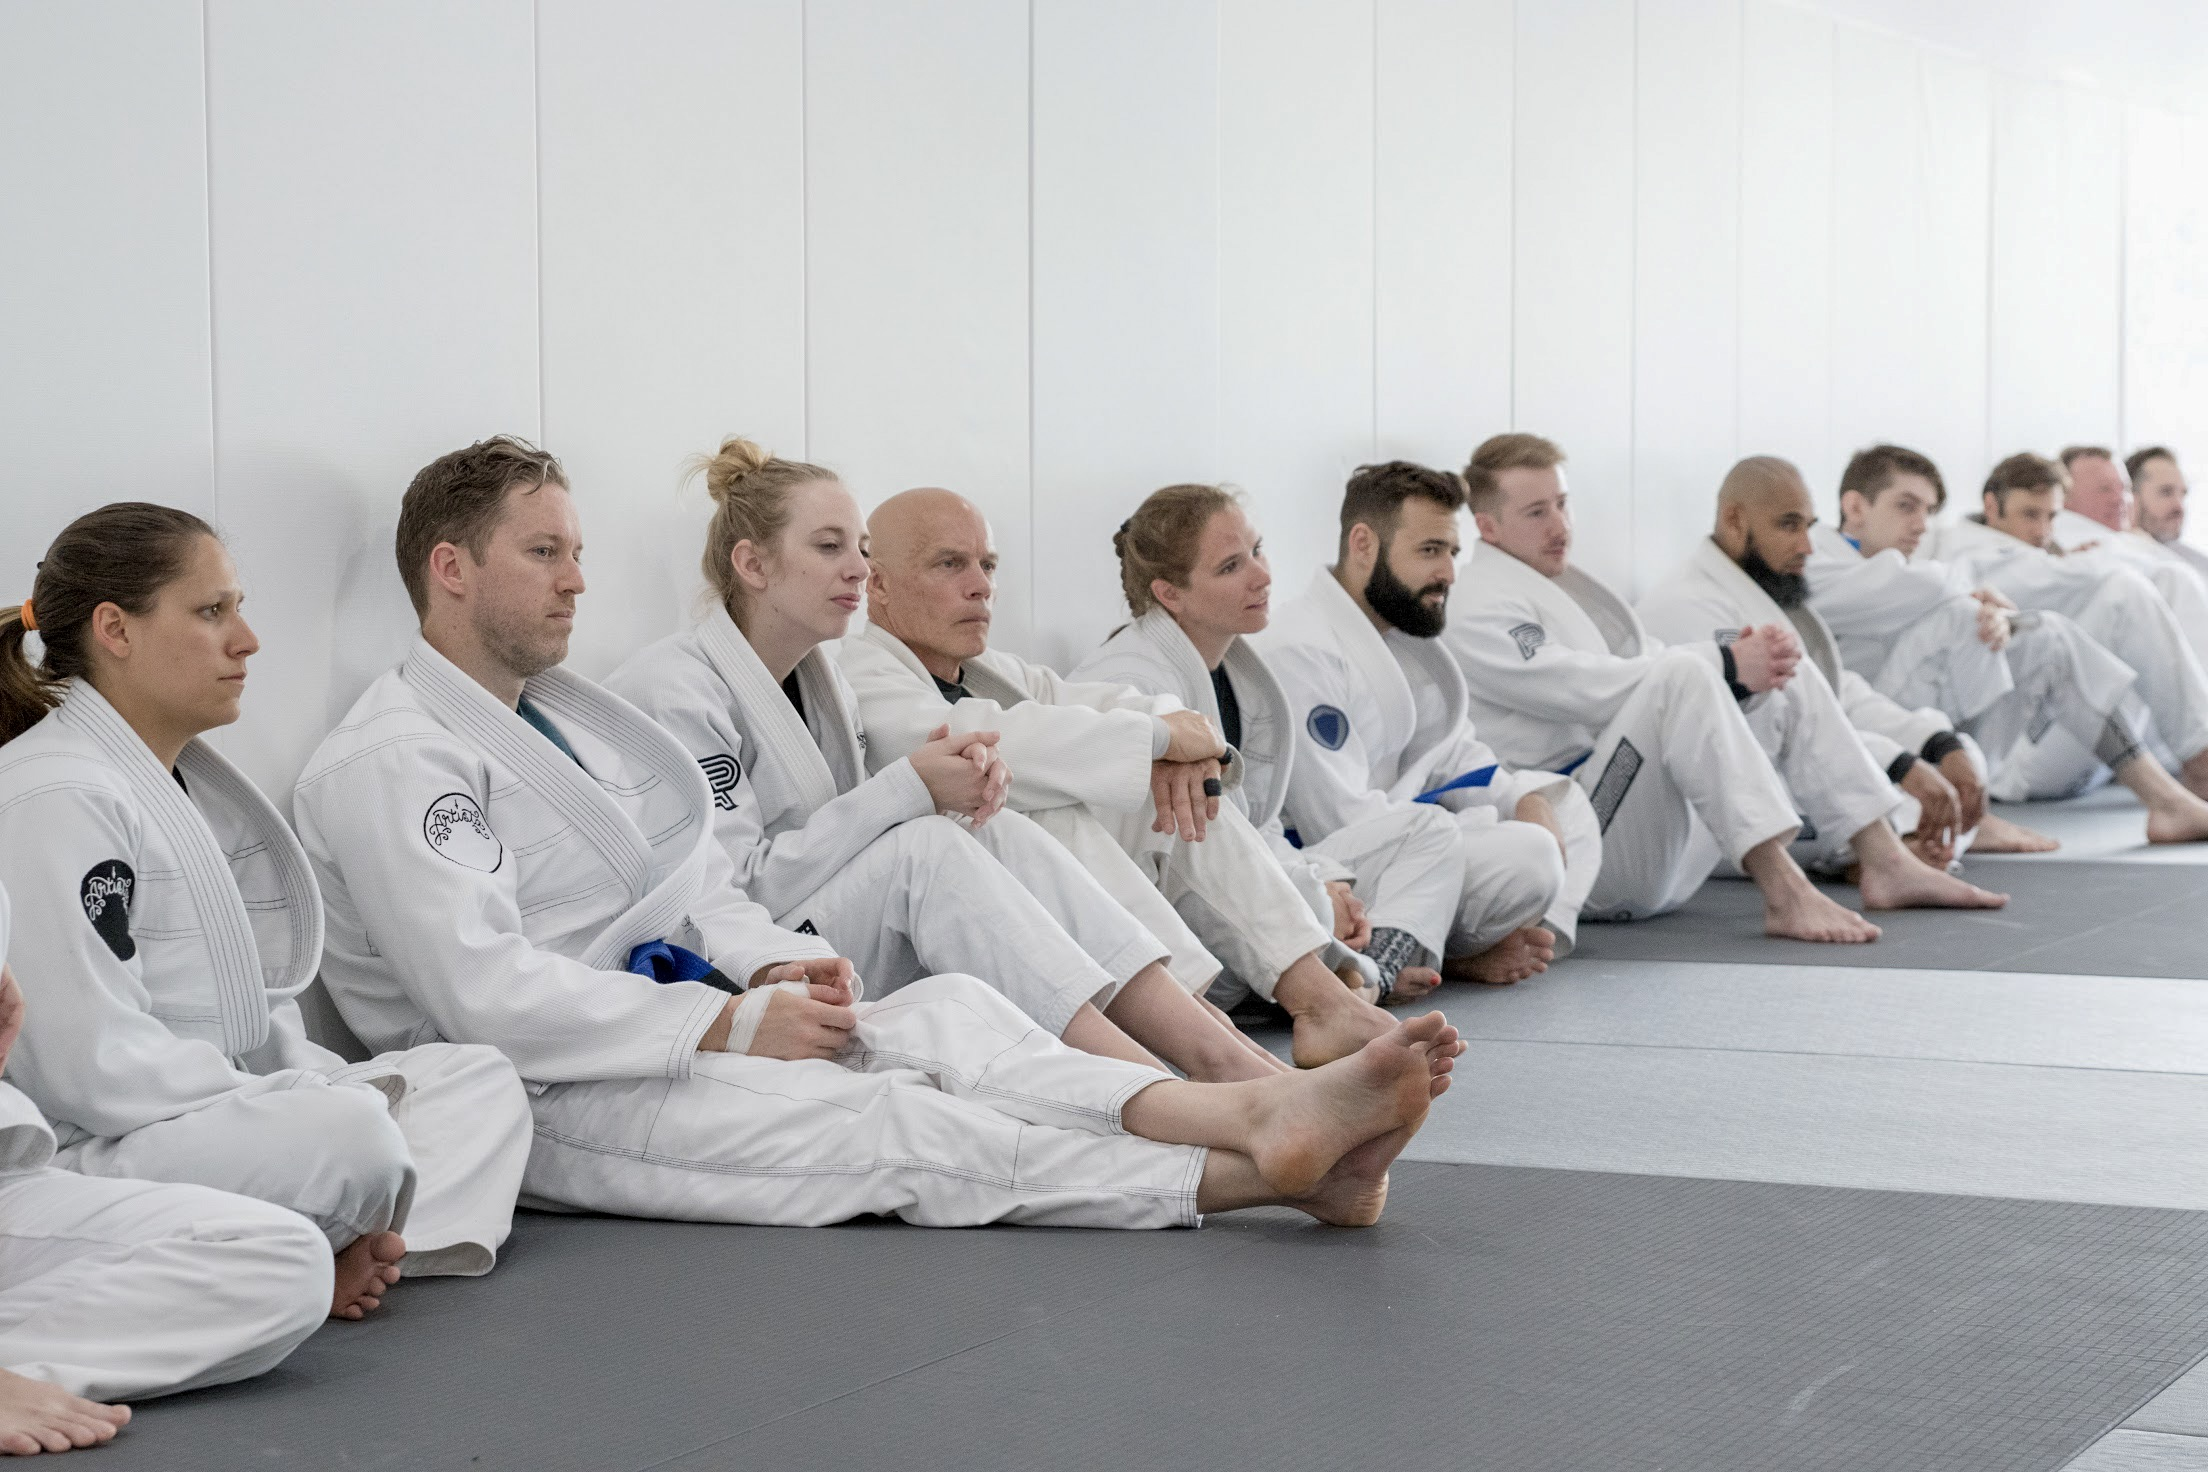 - FUNDAMENTALSOur Fundamentals program is designed for any adult male or female regardless of size or age. No experience required, anyone can join! You will increase confidence, endurance, strength, flexibility and your Jiu-Jitsu knowledge.